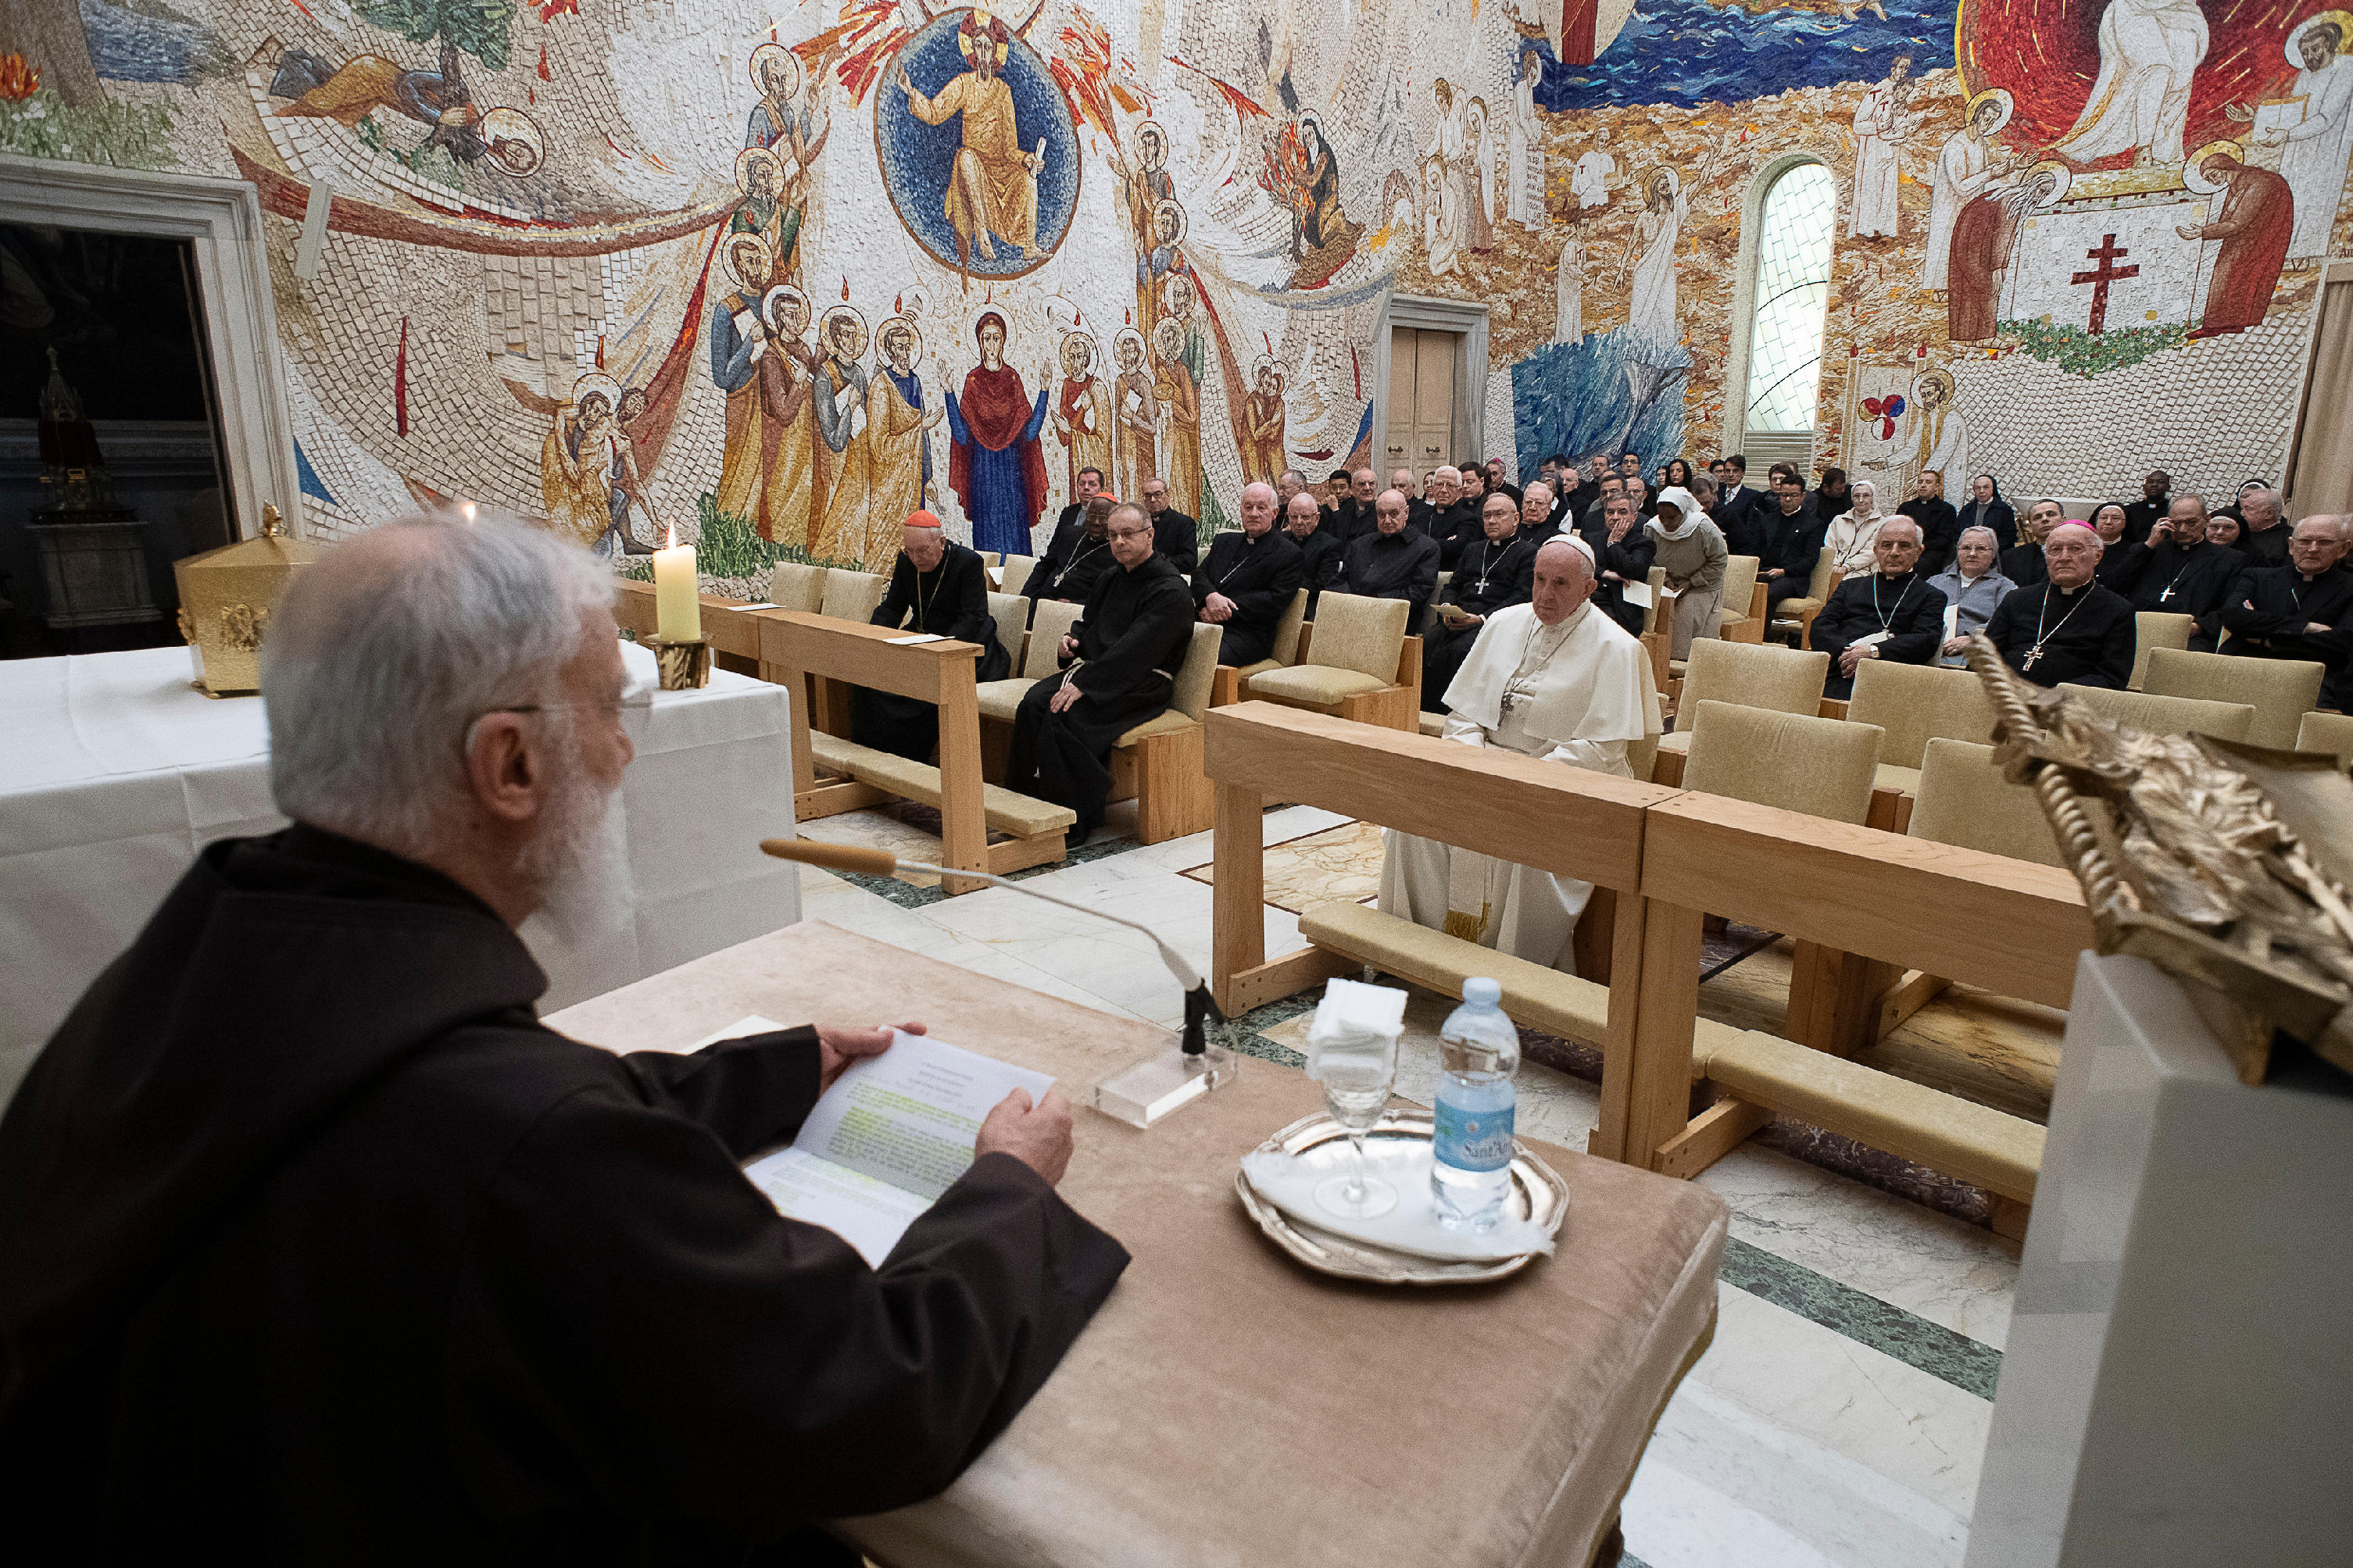 Father Cantalamessa's Fifth Lent Homily 2019 - ZENIT - English